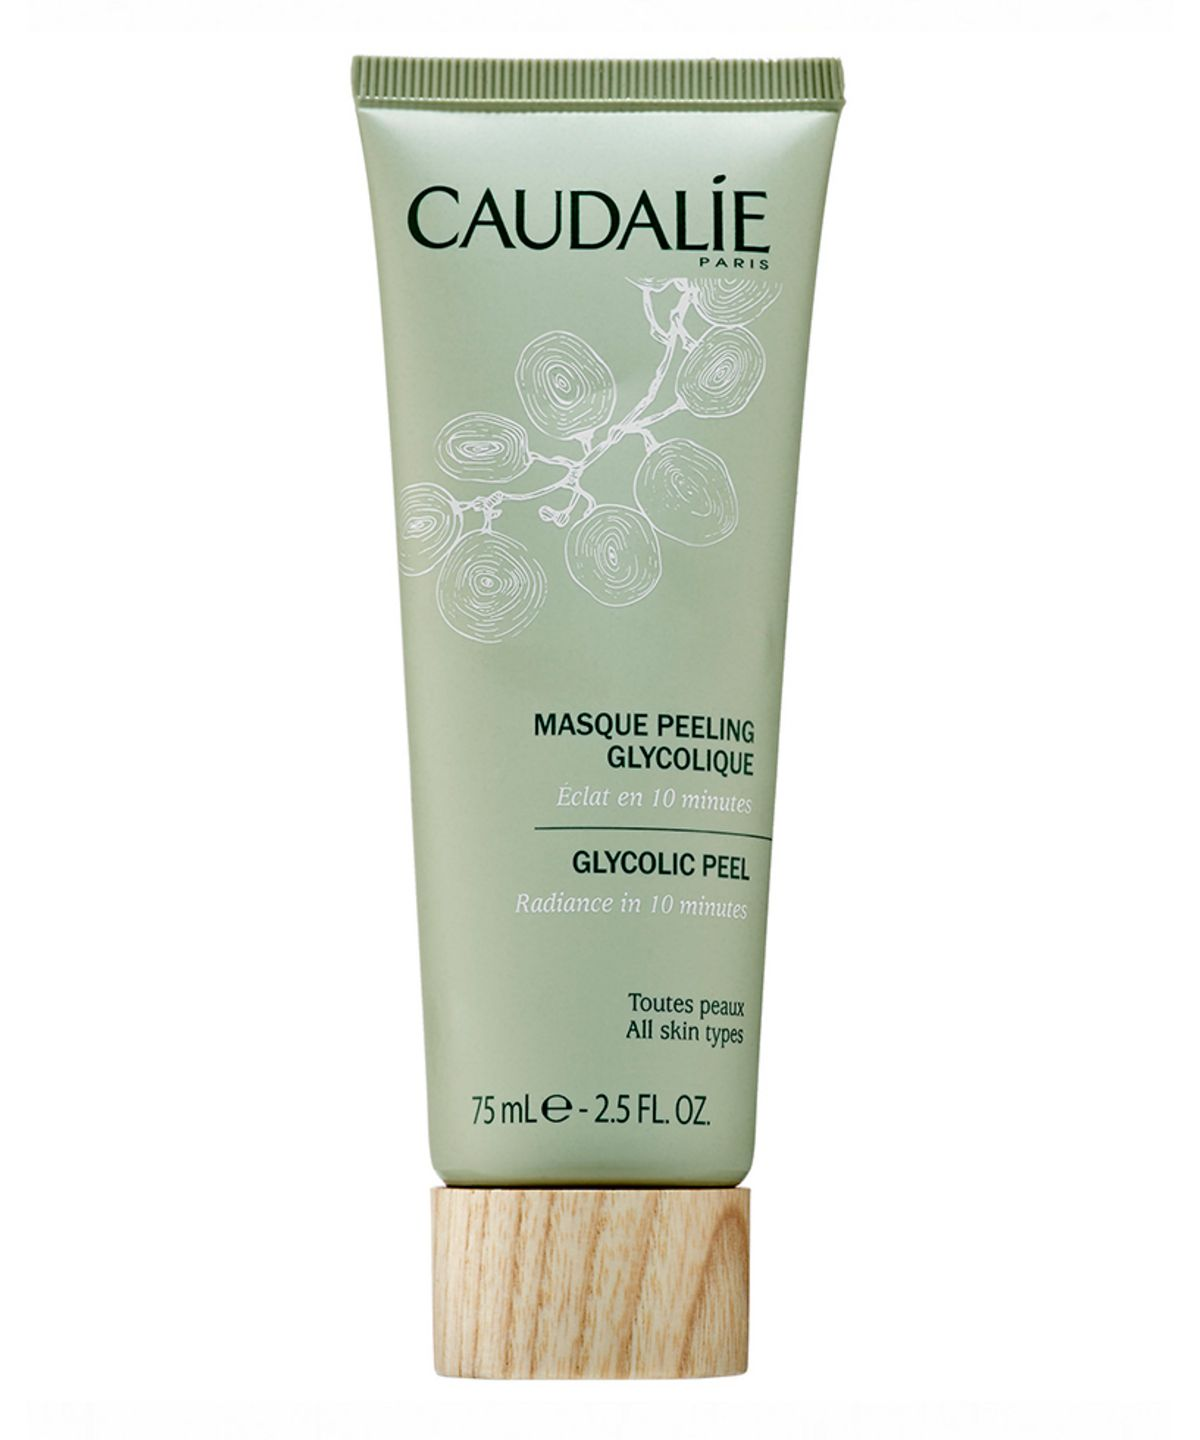 Reserve, neither caudalie facial products where